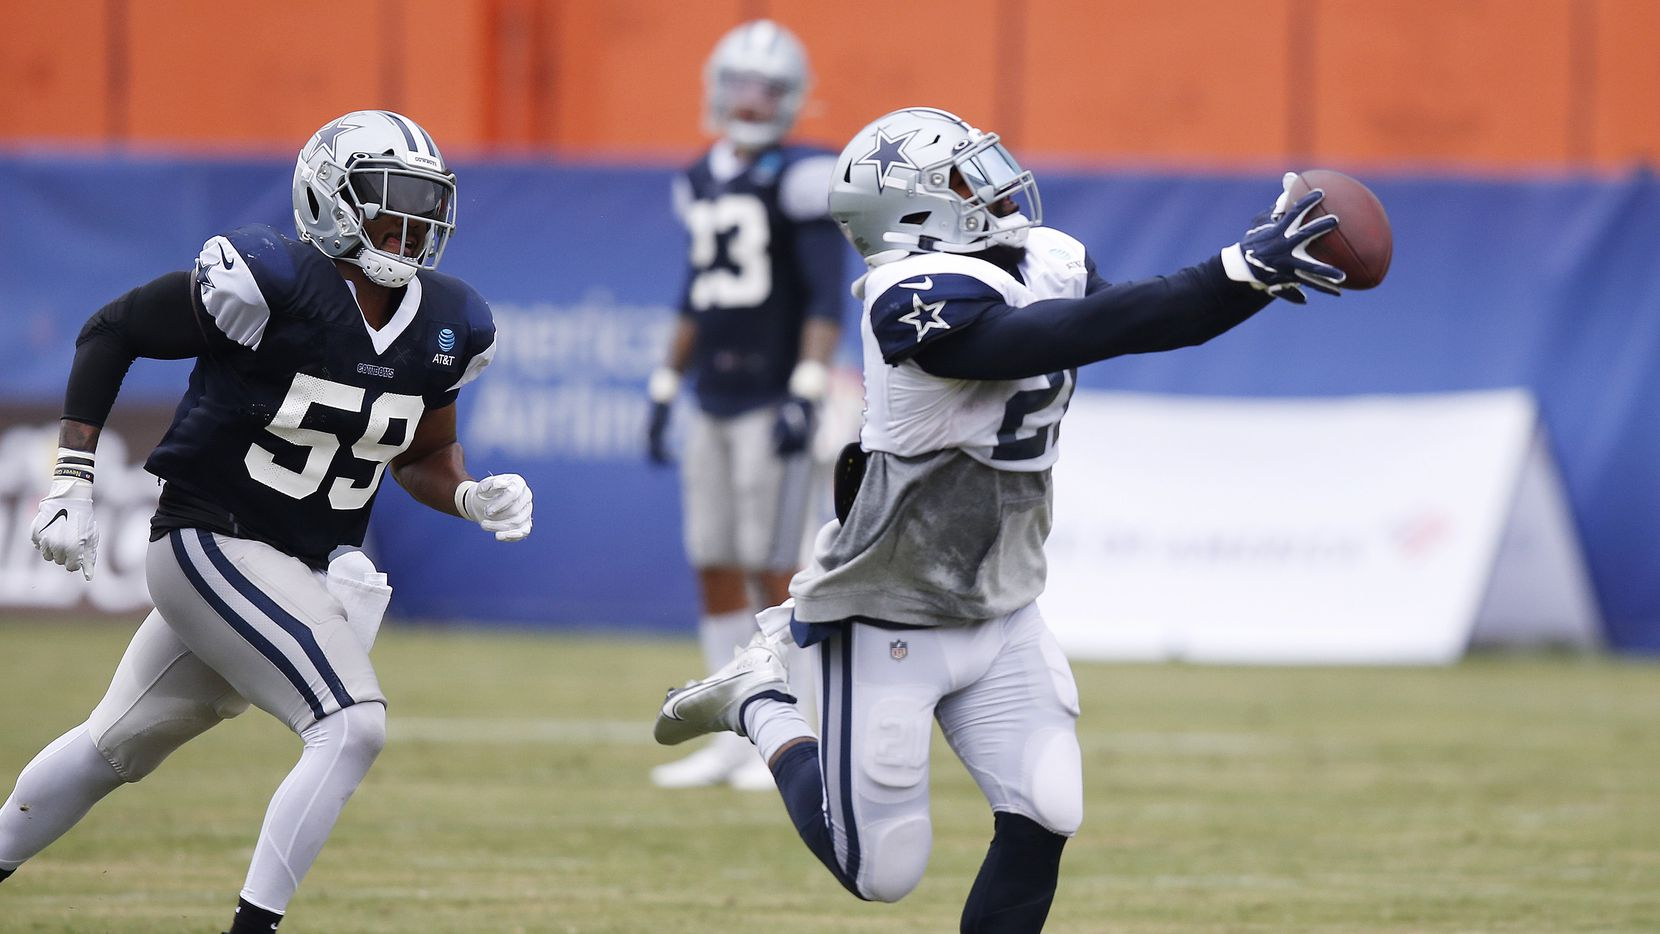 Dallas Cowboys running back Ezekiel Elliott (21) catches a pass in front of Dallas Cowboys linebacker Justin March (59) on a play in practice during training camp at the Dallas Cowboys headquarters at The Star in Frisco, Texas on Thursday, September 3, 2020.